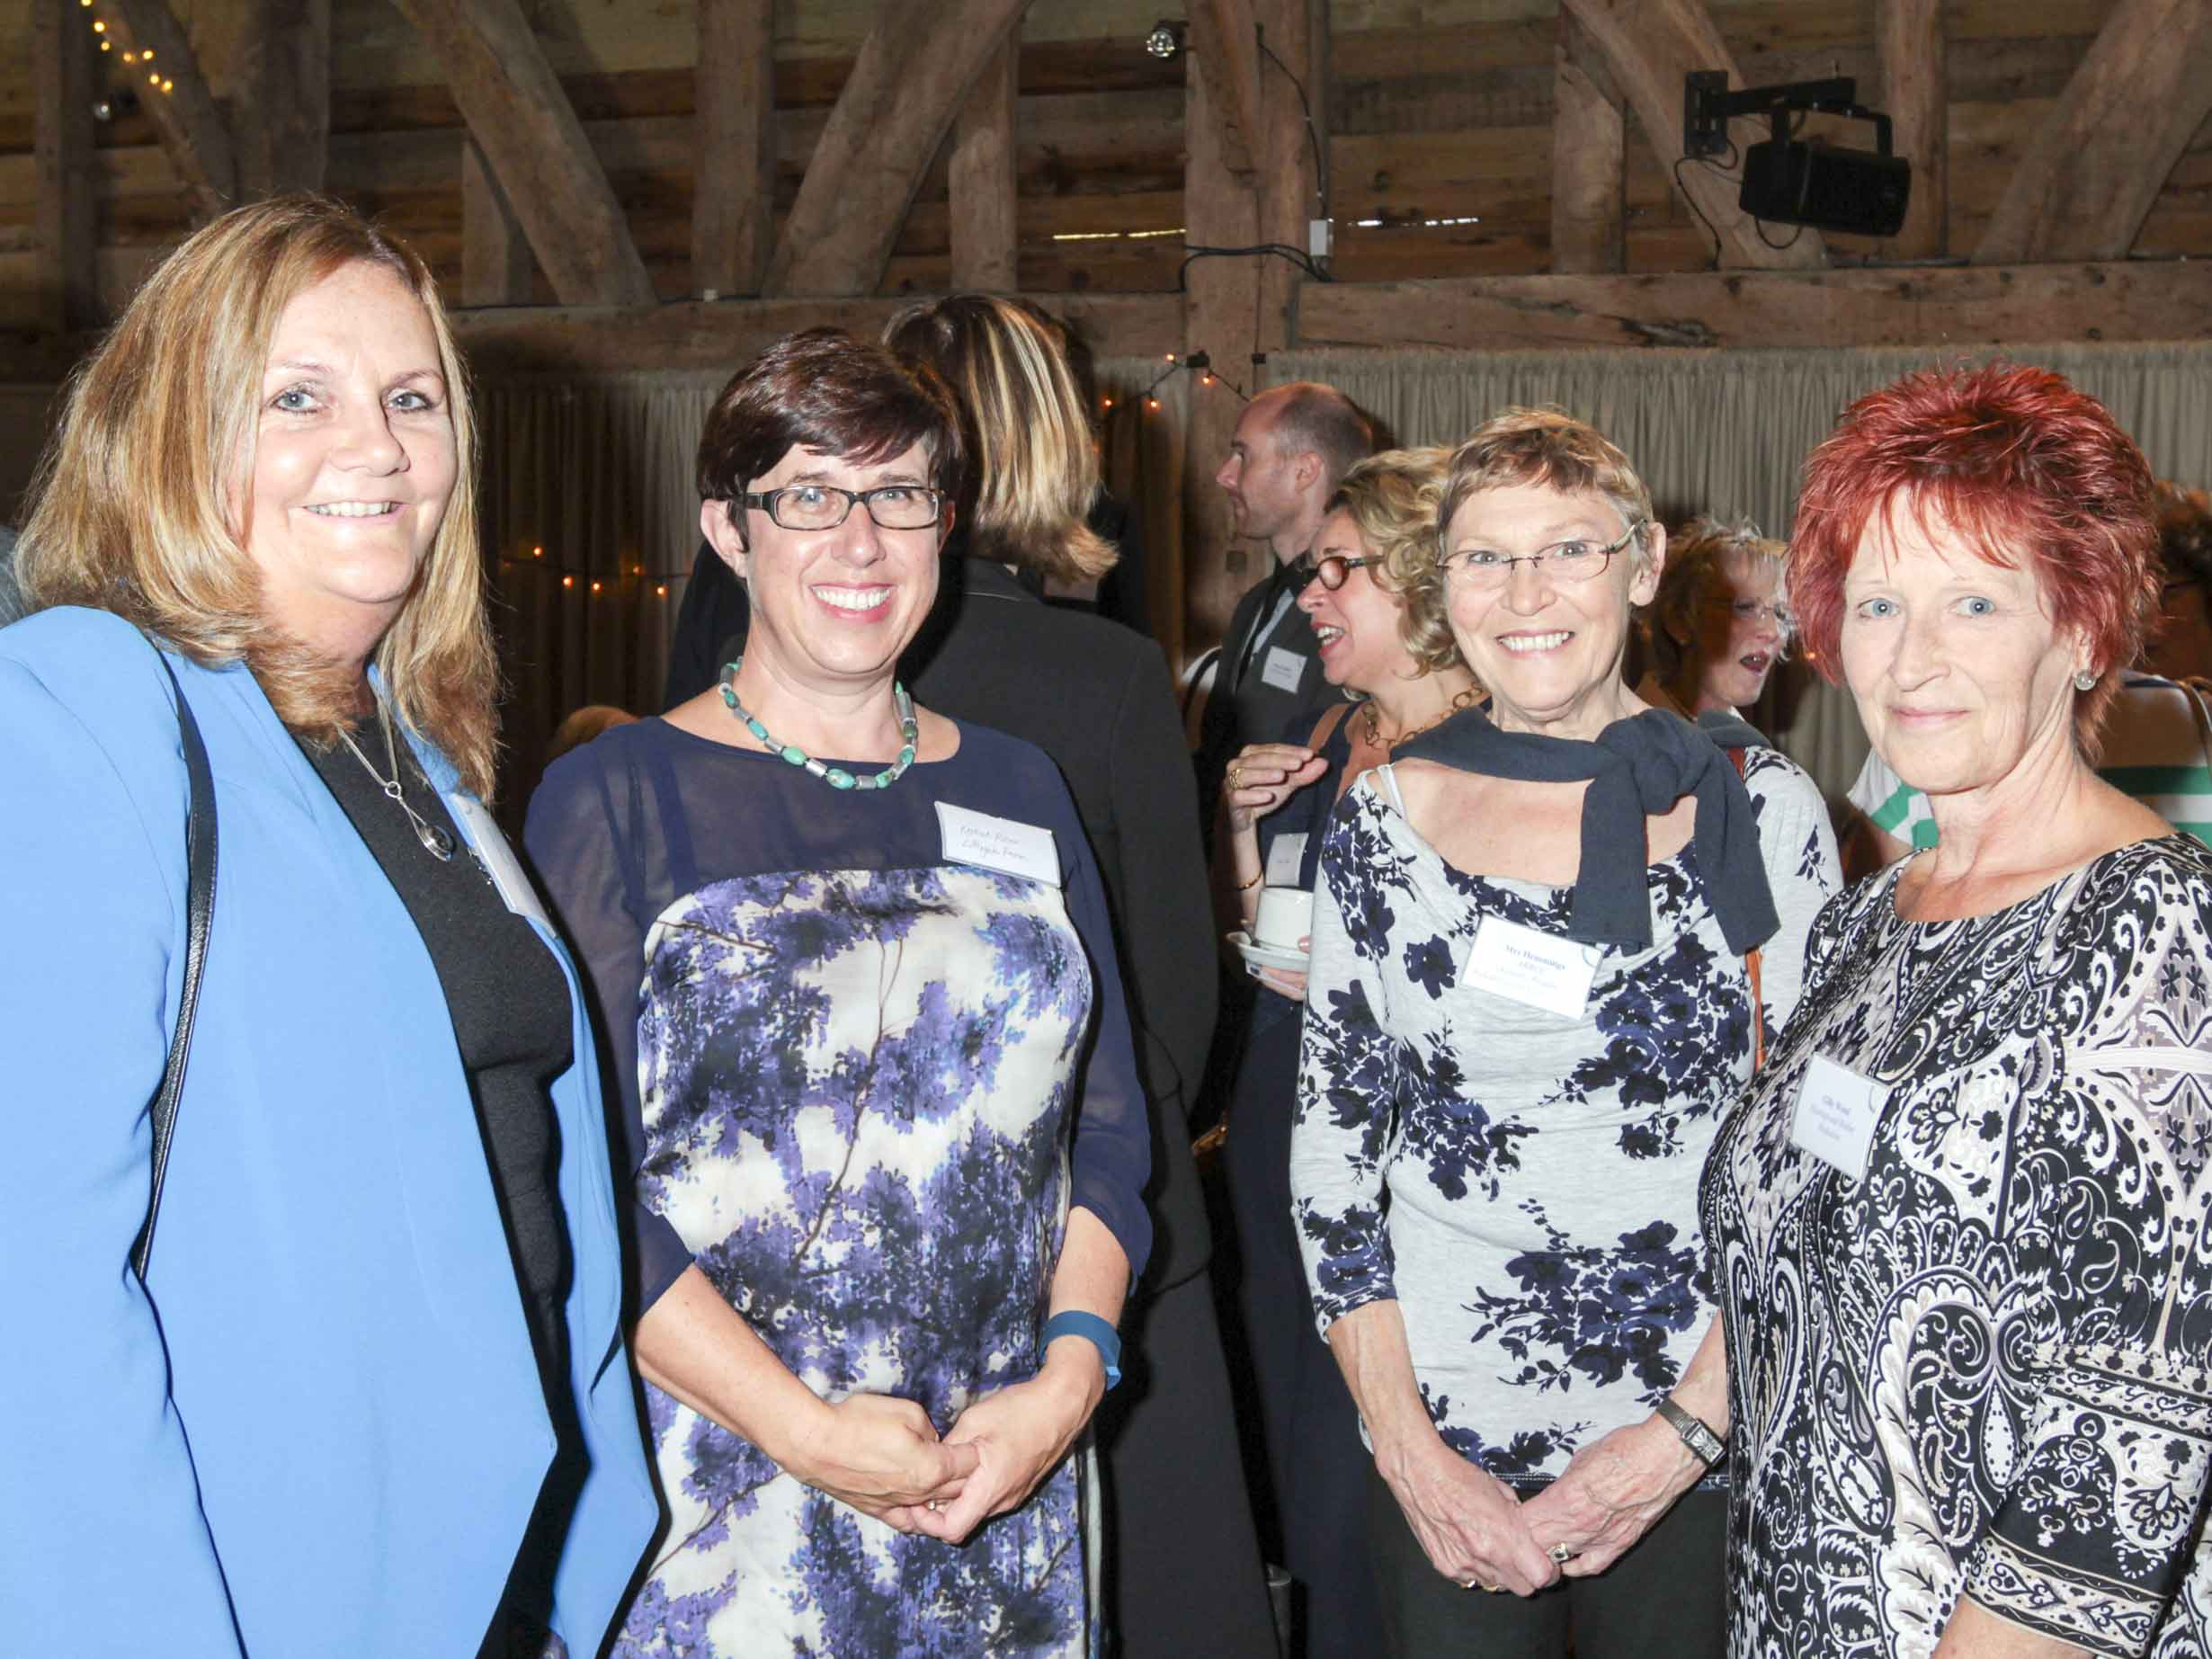 Four women at an event at Michelham Priory